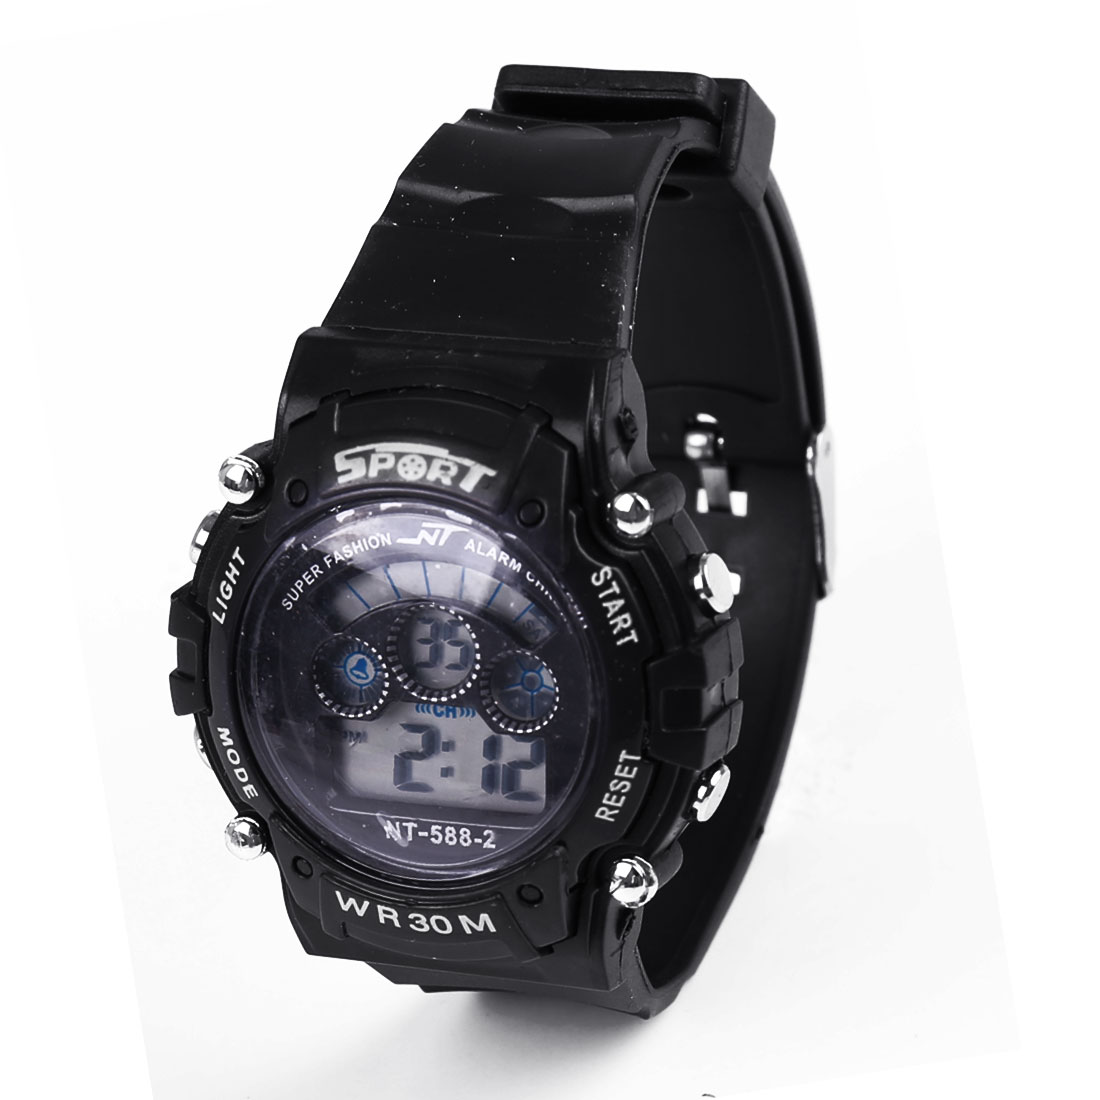 Black Plastic Adjustable Band Water Resistance Digital Sports Wrist Watch